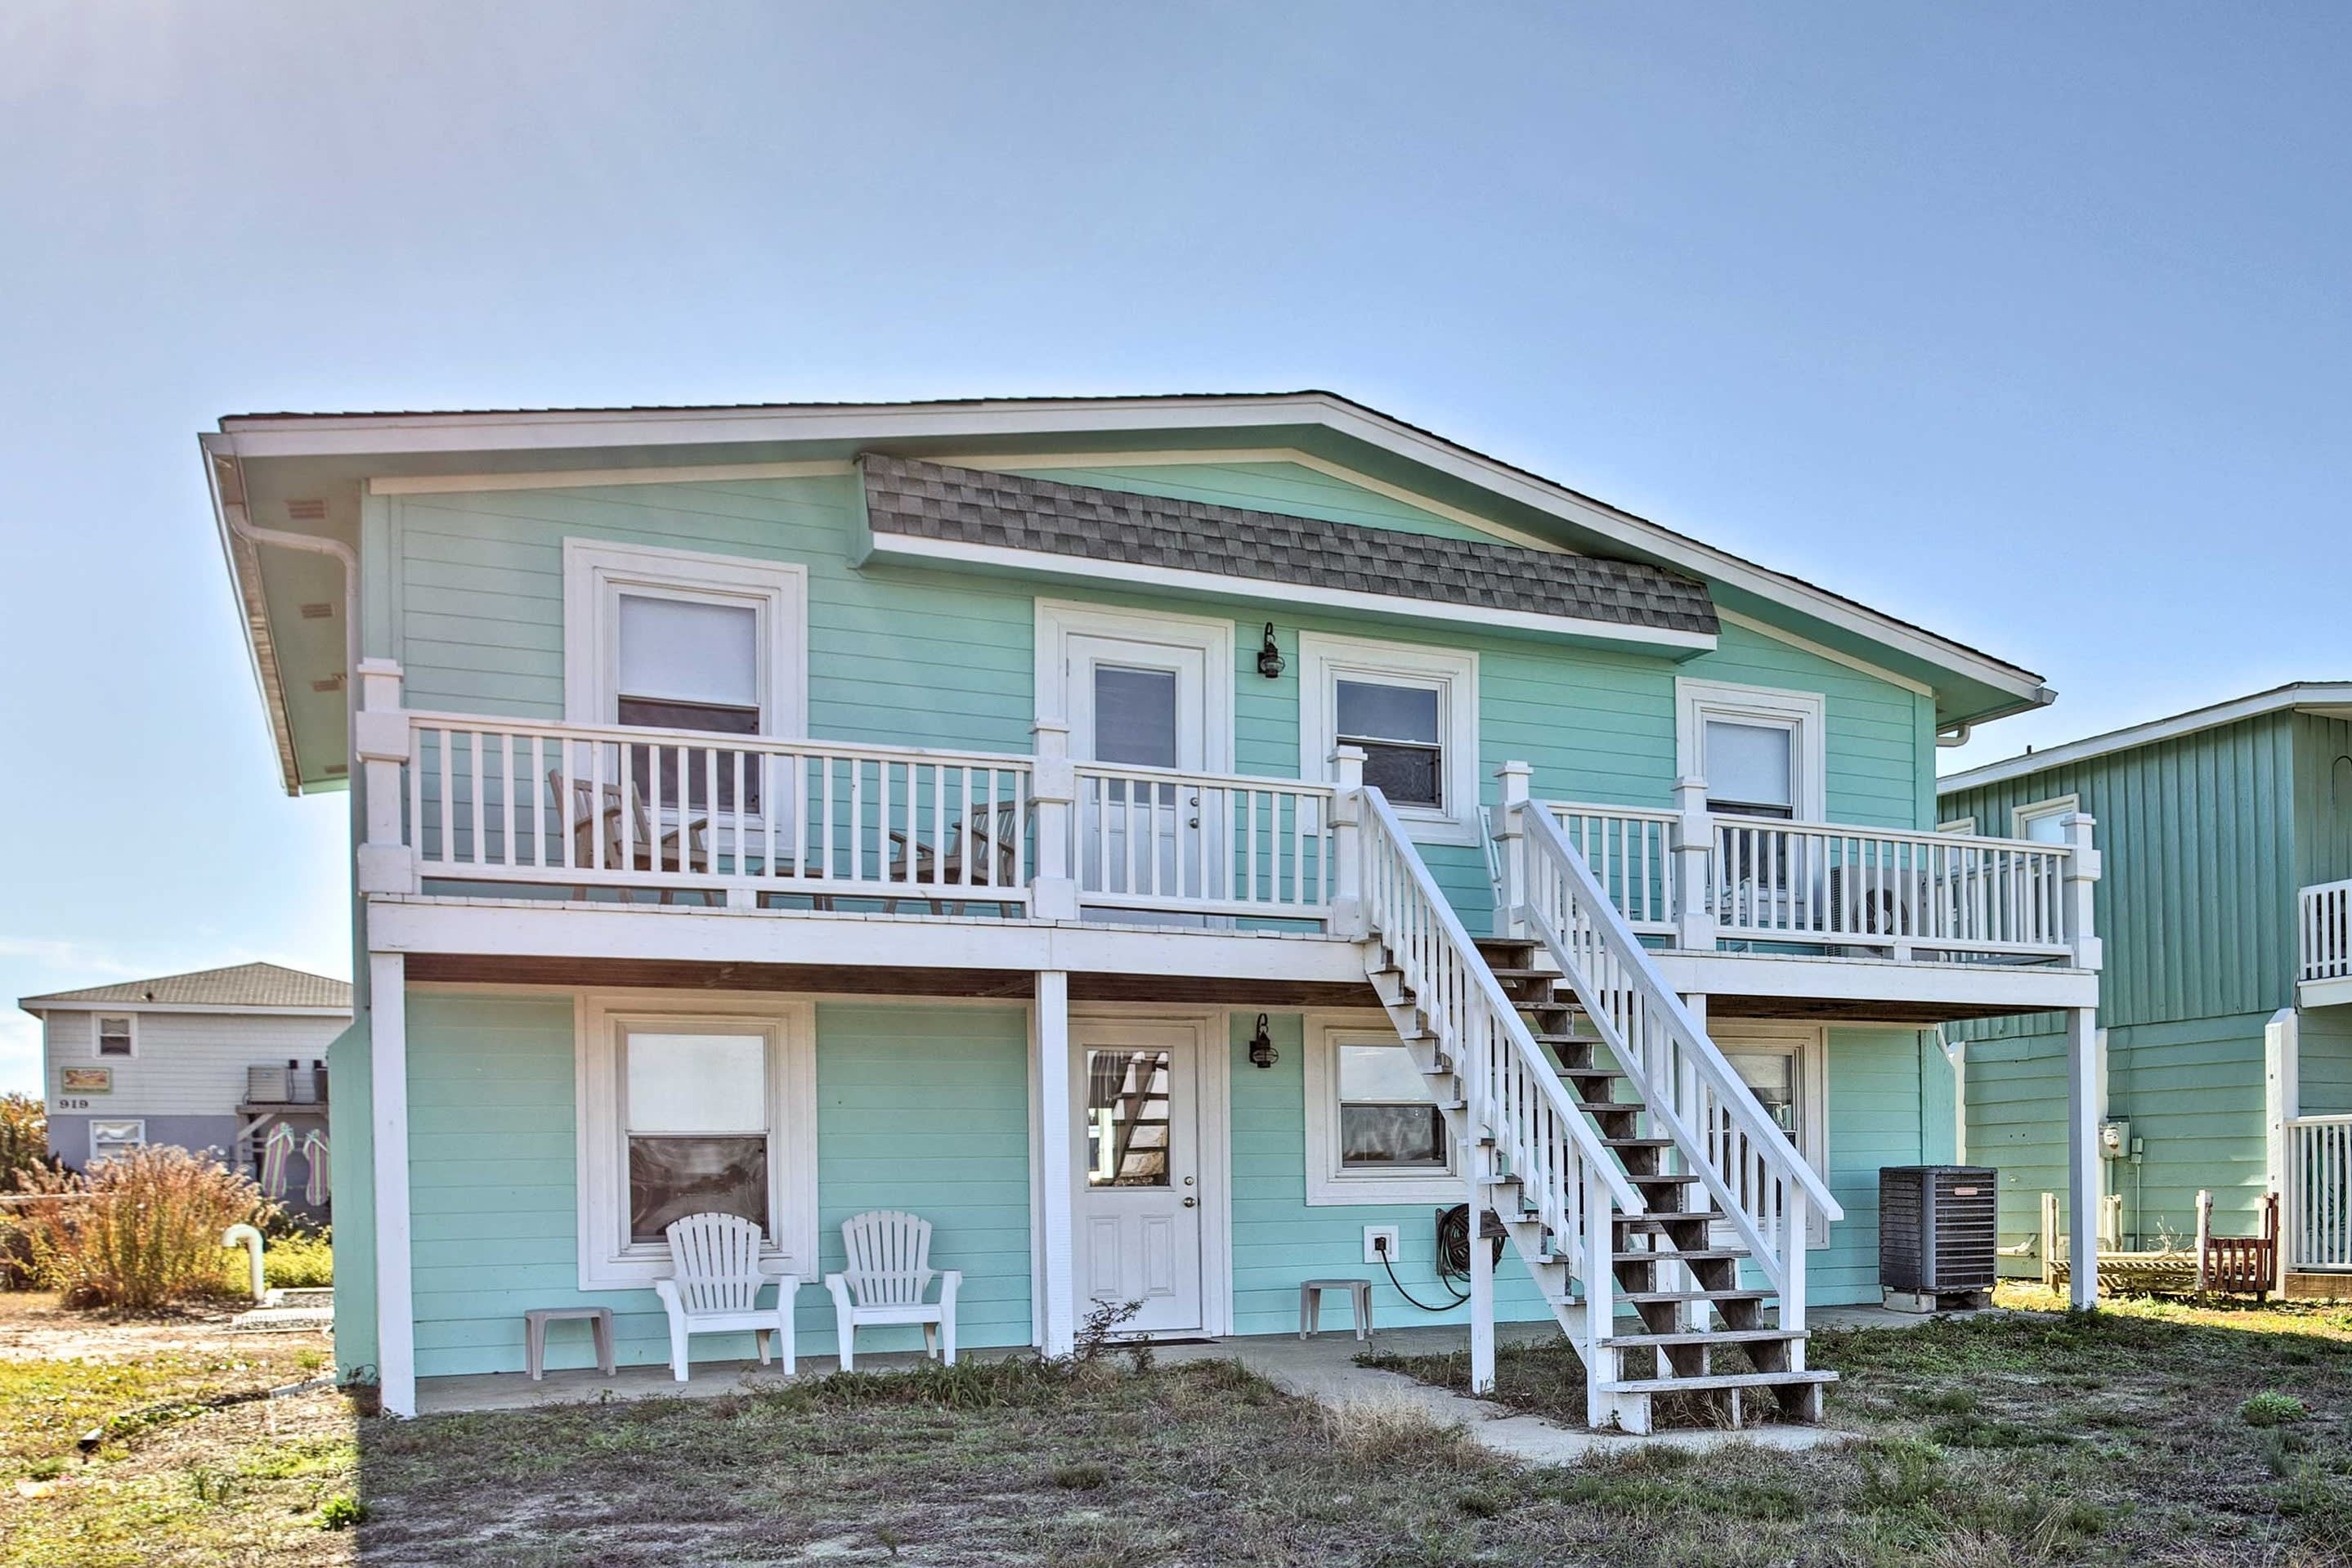 Escape to the beach at this 7-bedroom, 4-bath vacation rental in Holden Beach!